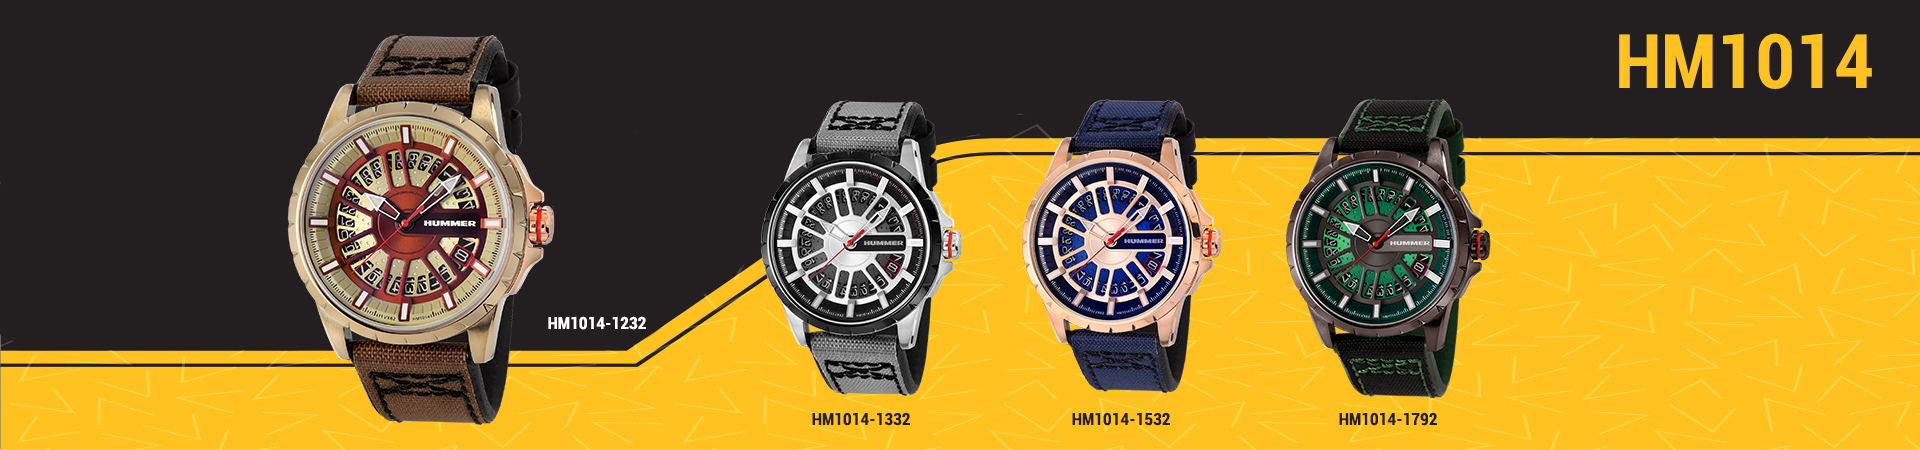 Hummer Watch Collection HM1014